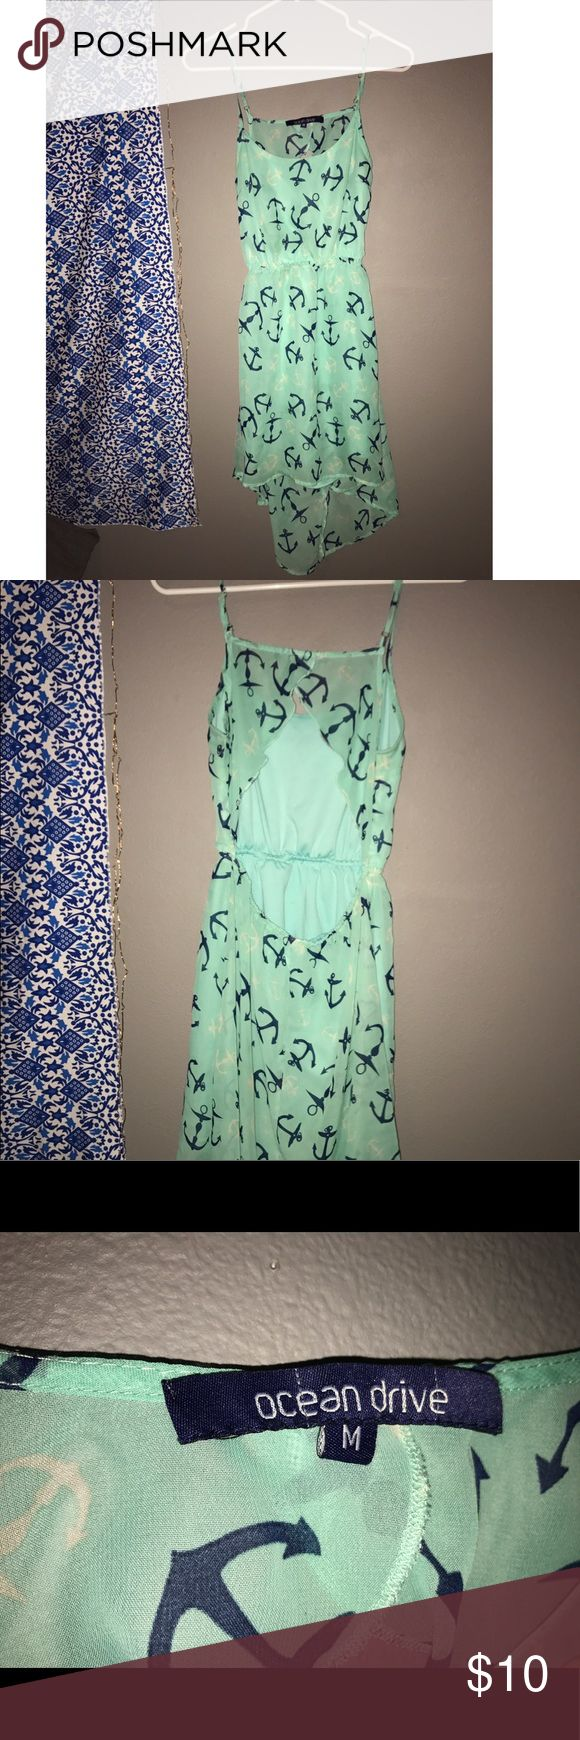 Teal anchor print dress from Hawaii I bought this size medium, teal, anchor print dress in Hawaii and has only been worn a few times. Dresses Backless